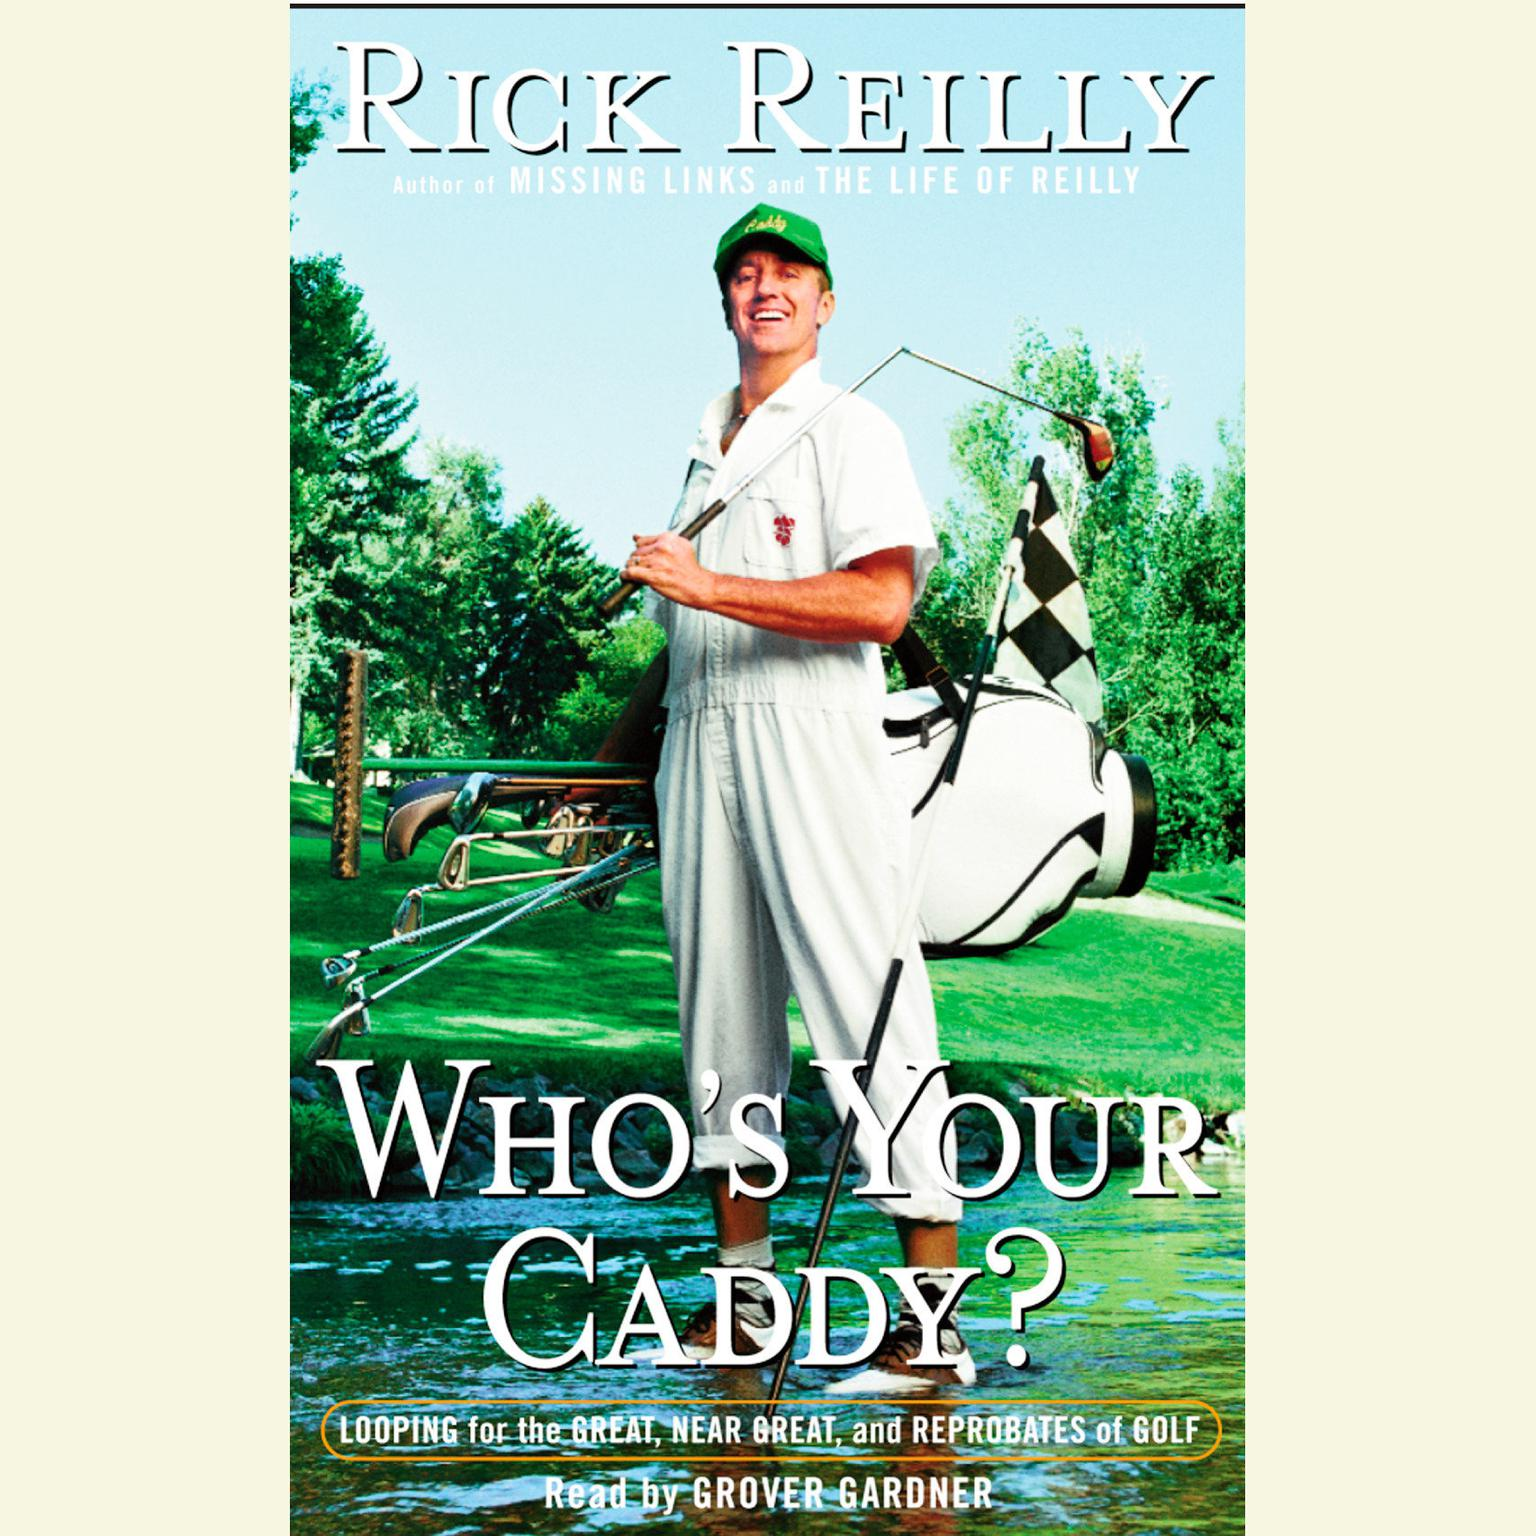 Golf Caddy Resume Who 39s Your Caddy Audiobook Abridged Listen Instantly